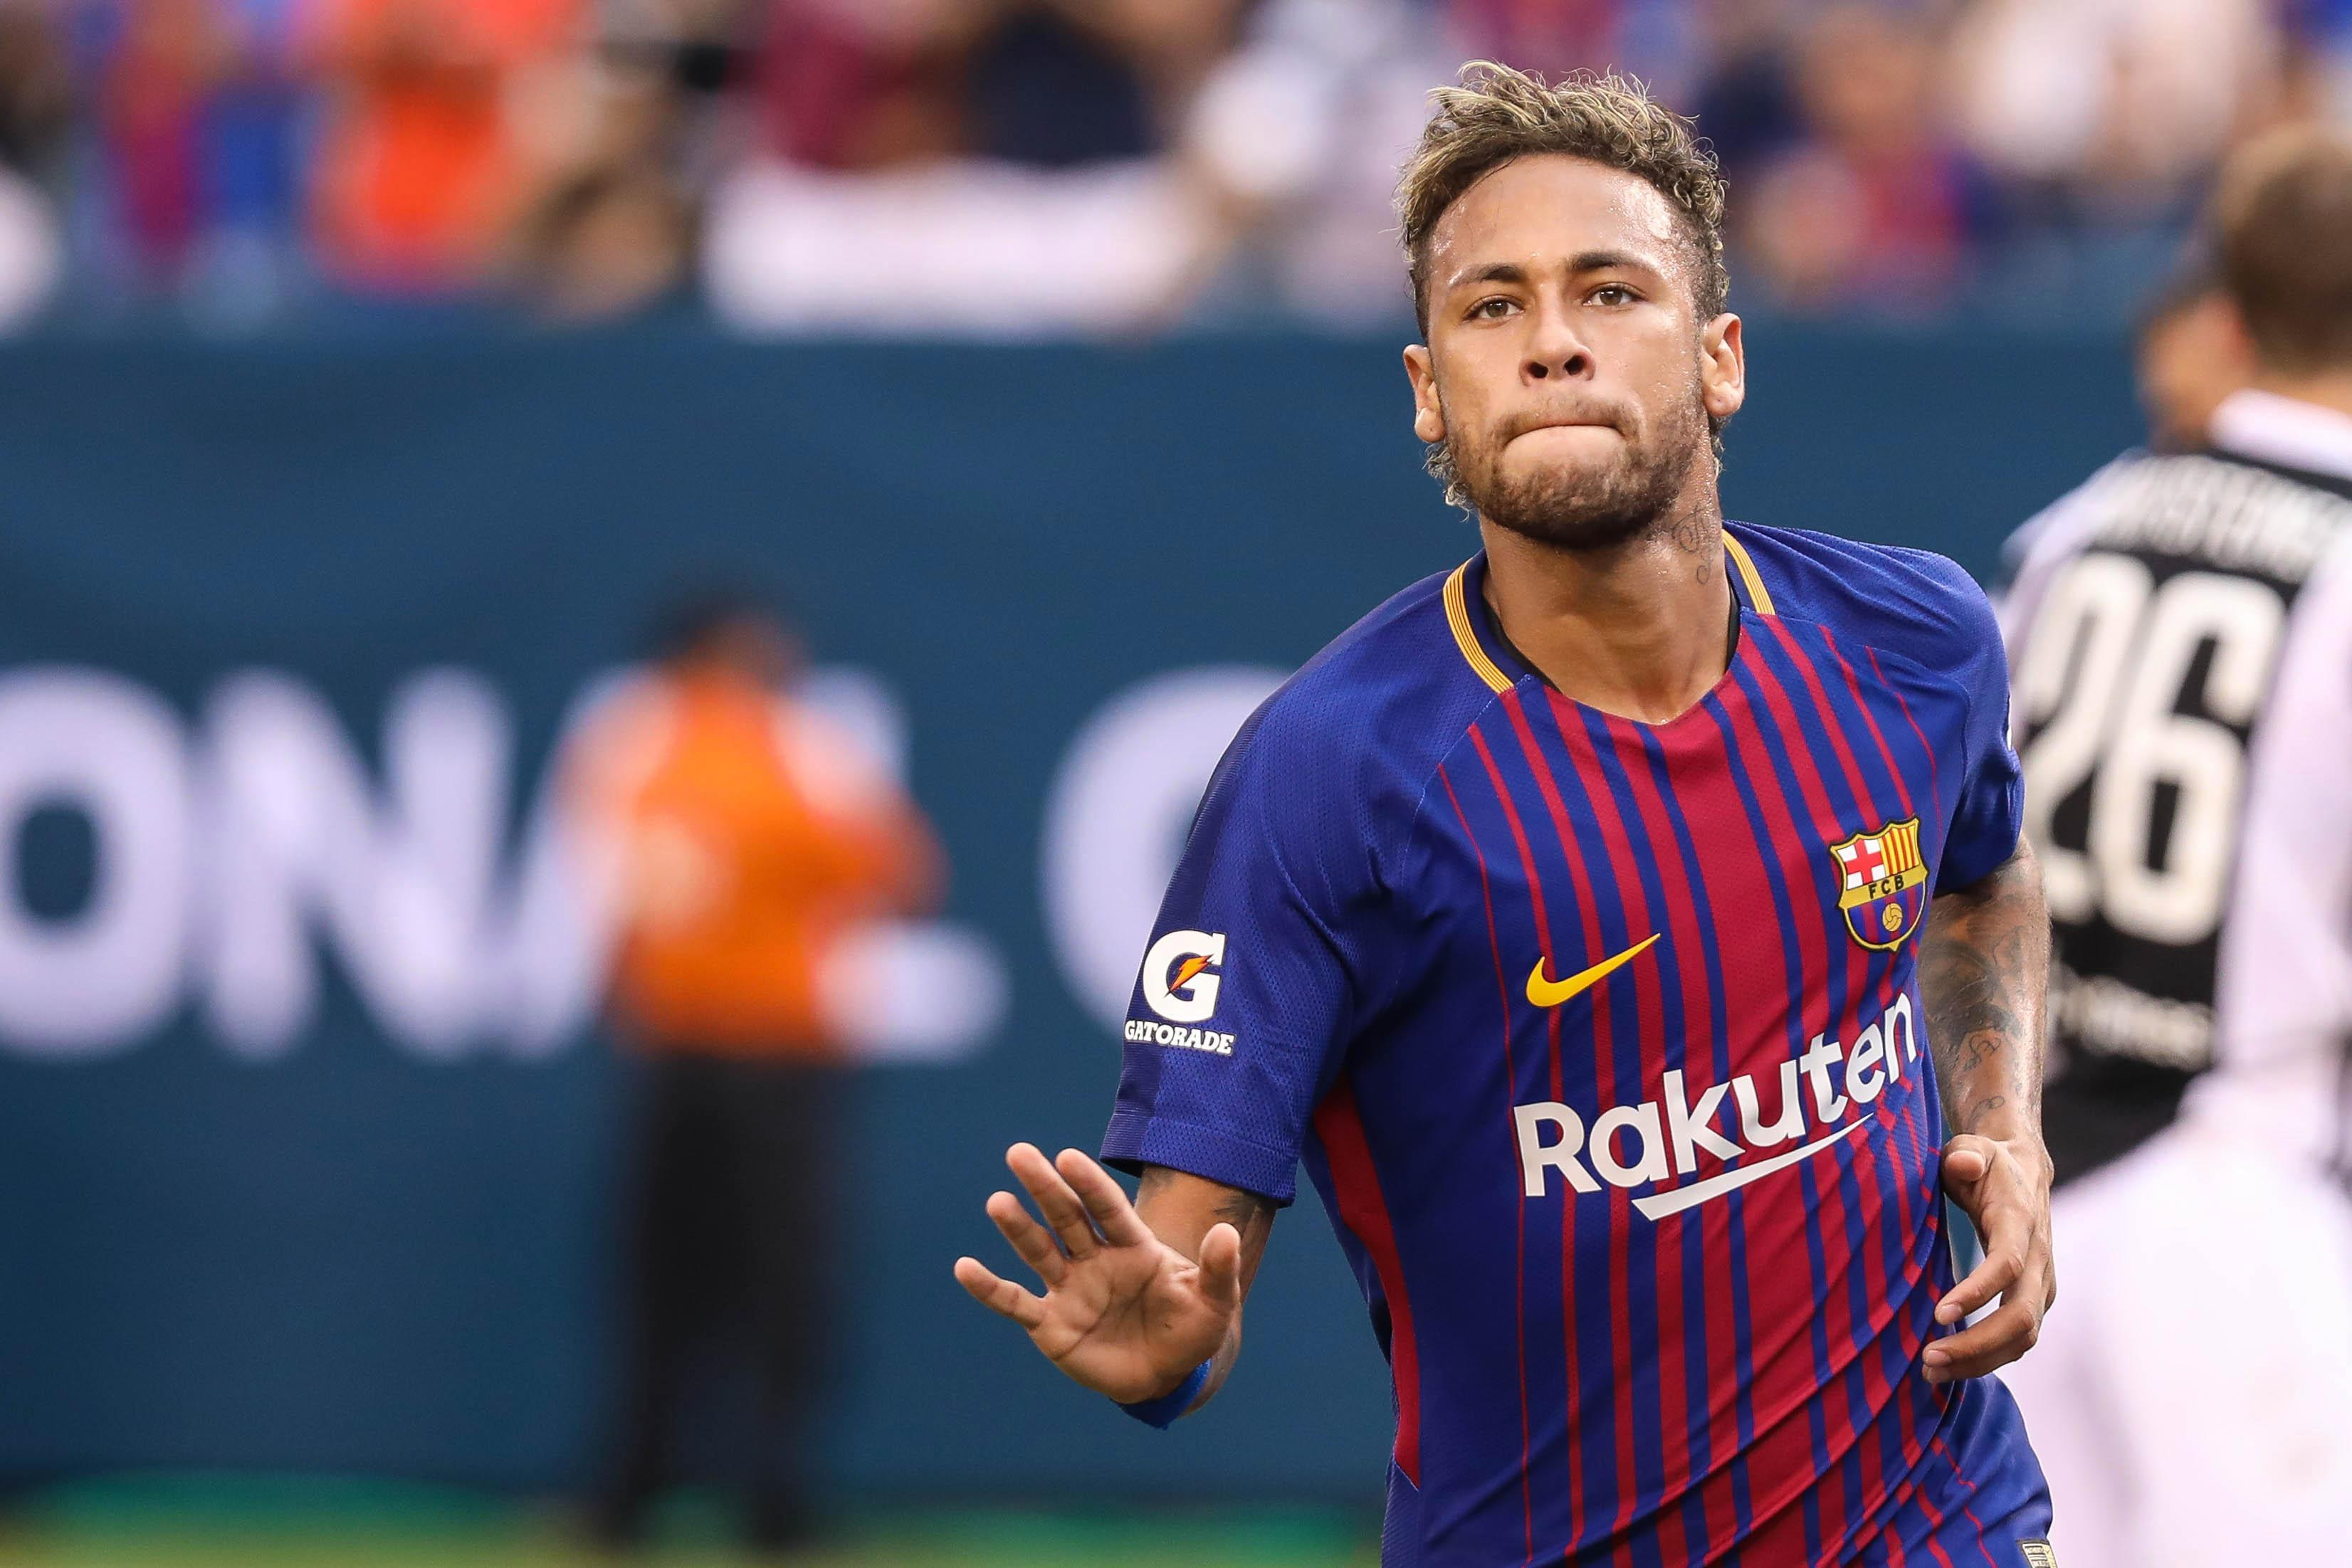 Neymar's future at Barcelona is up in the air with PSG interested in signing him